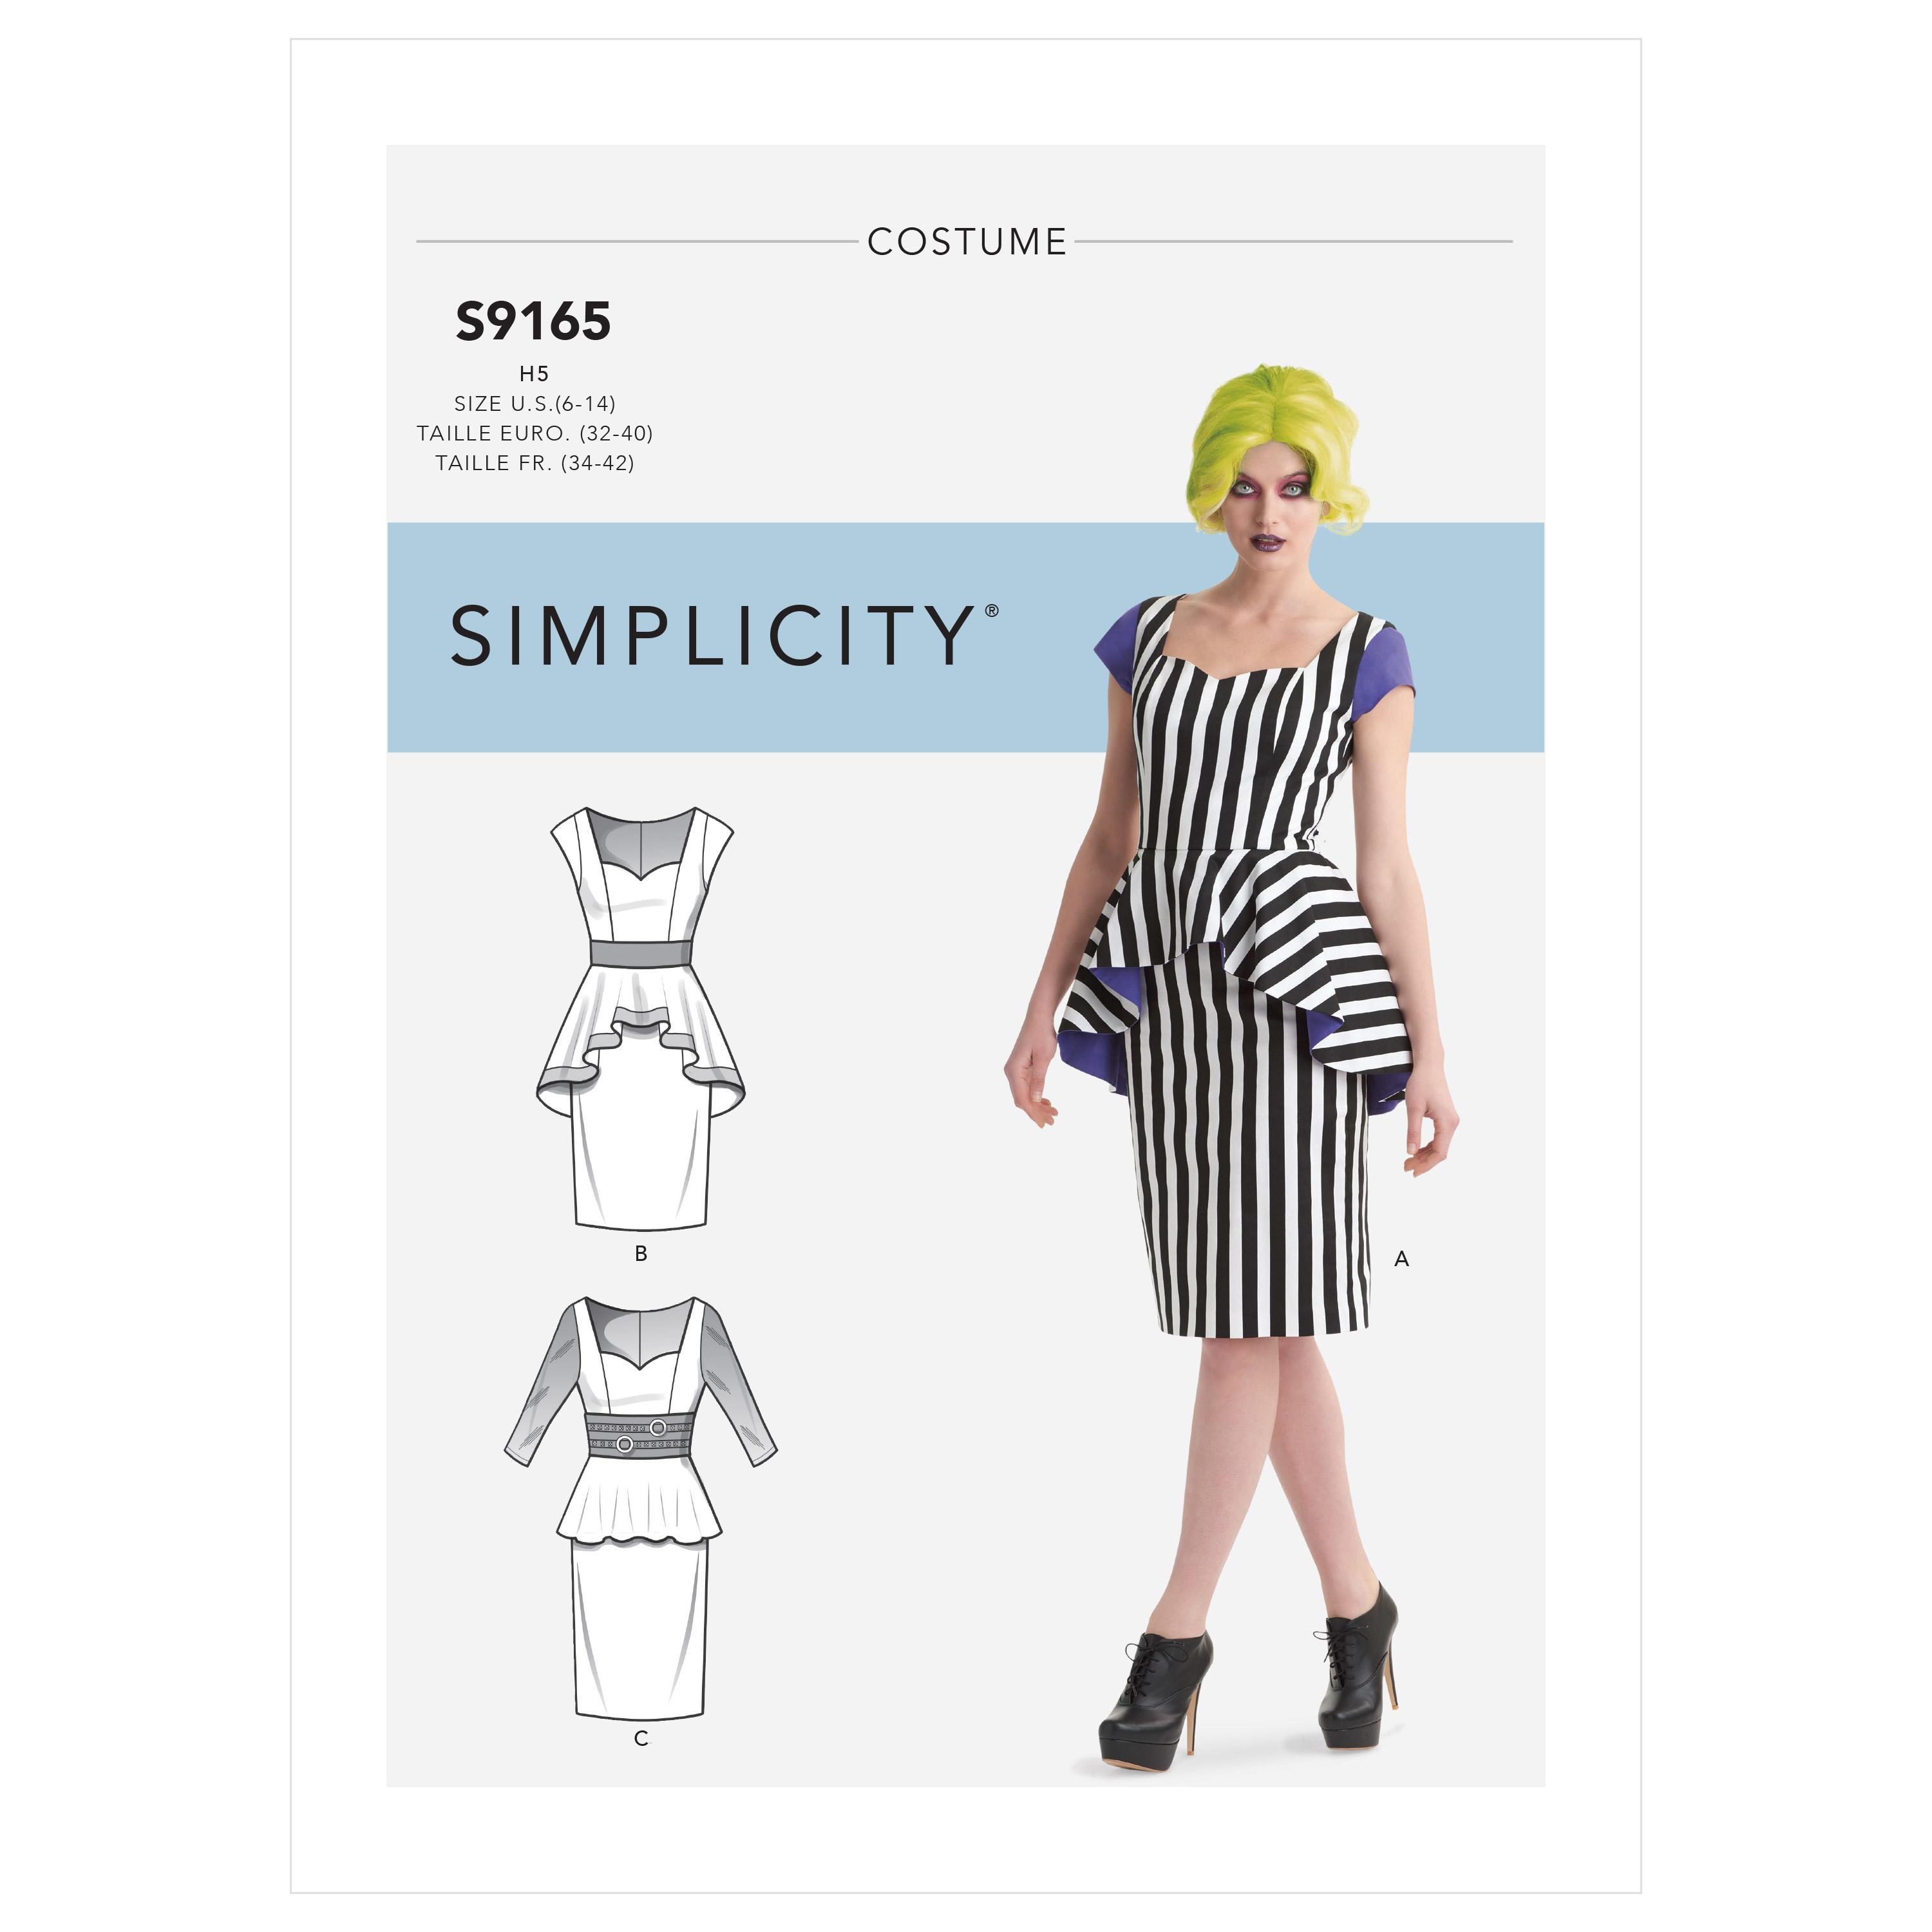 Simplicity S9165 Misses' Costumes Dress